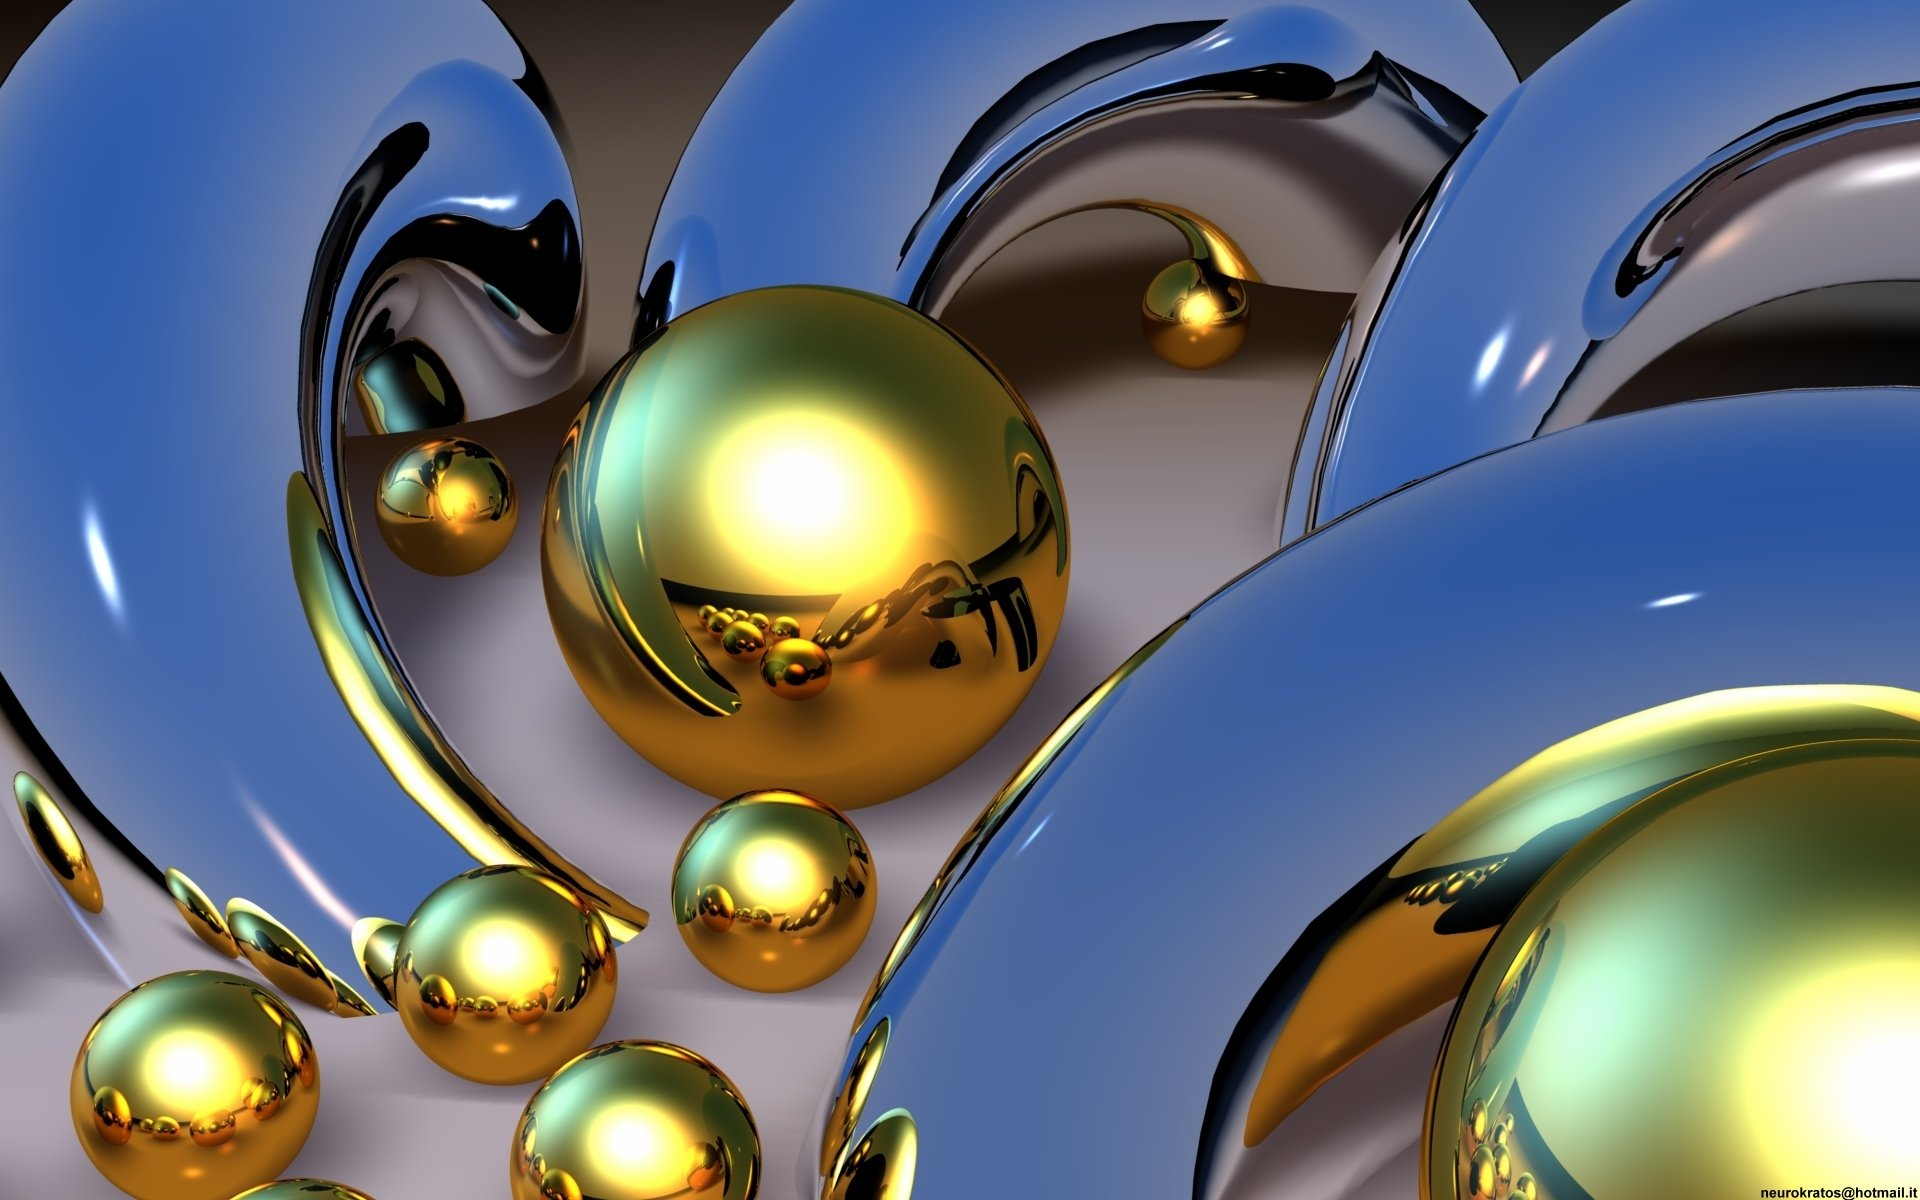 CGI - Cool  Gold Silver Metaal CGI Wallpaper